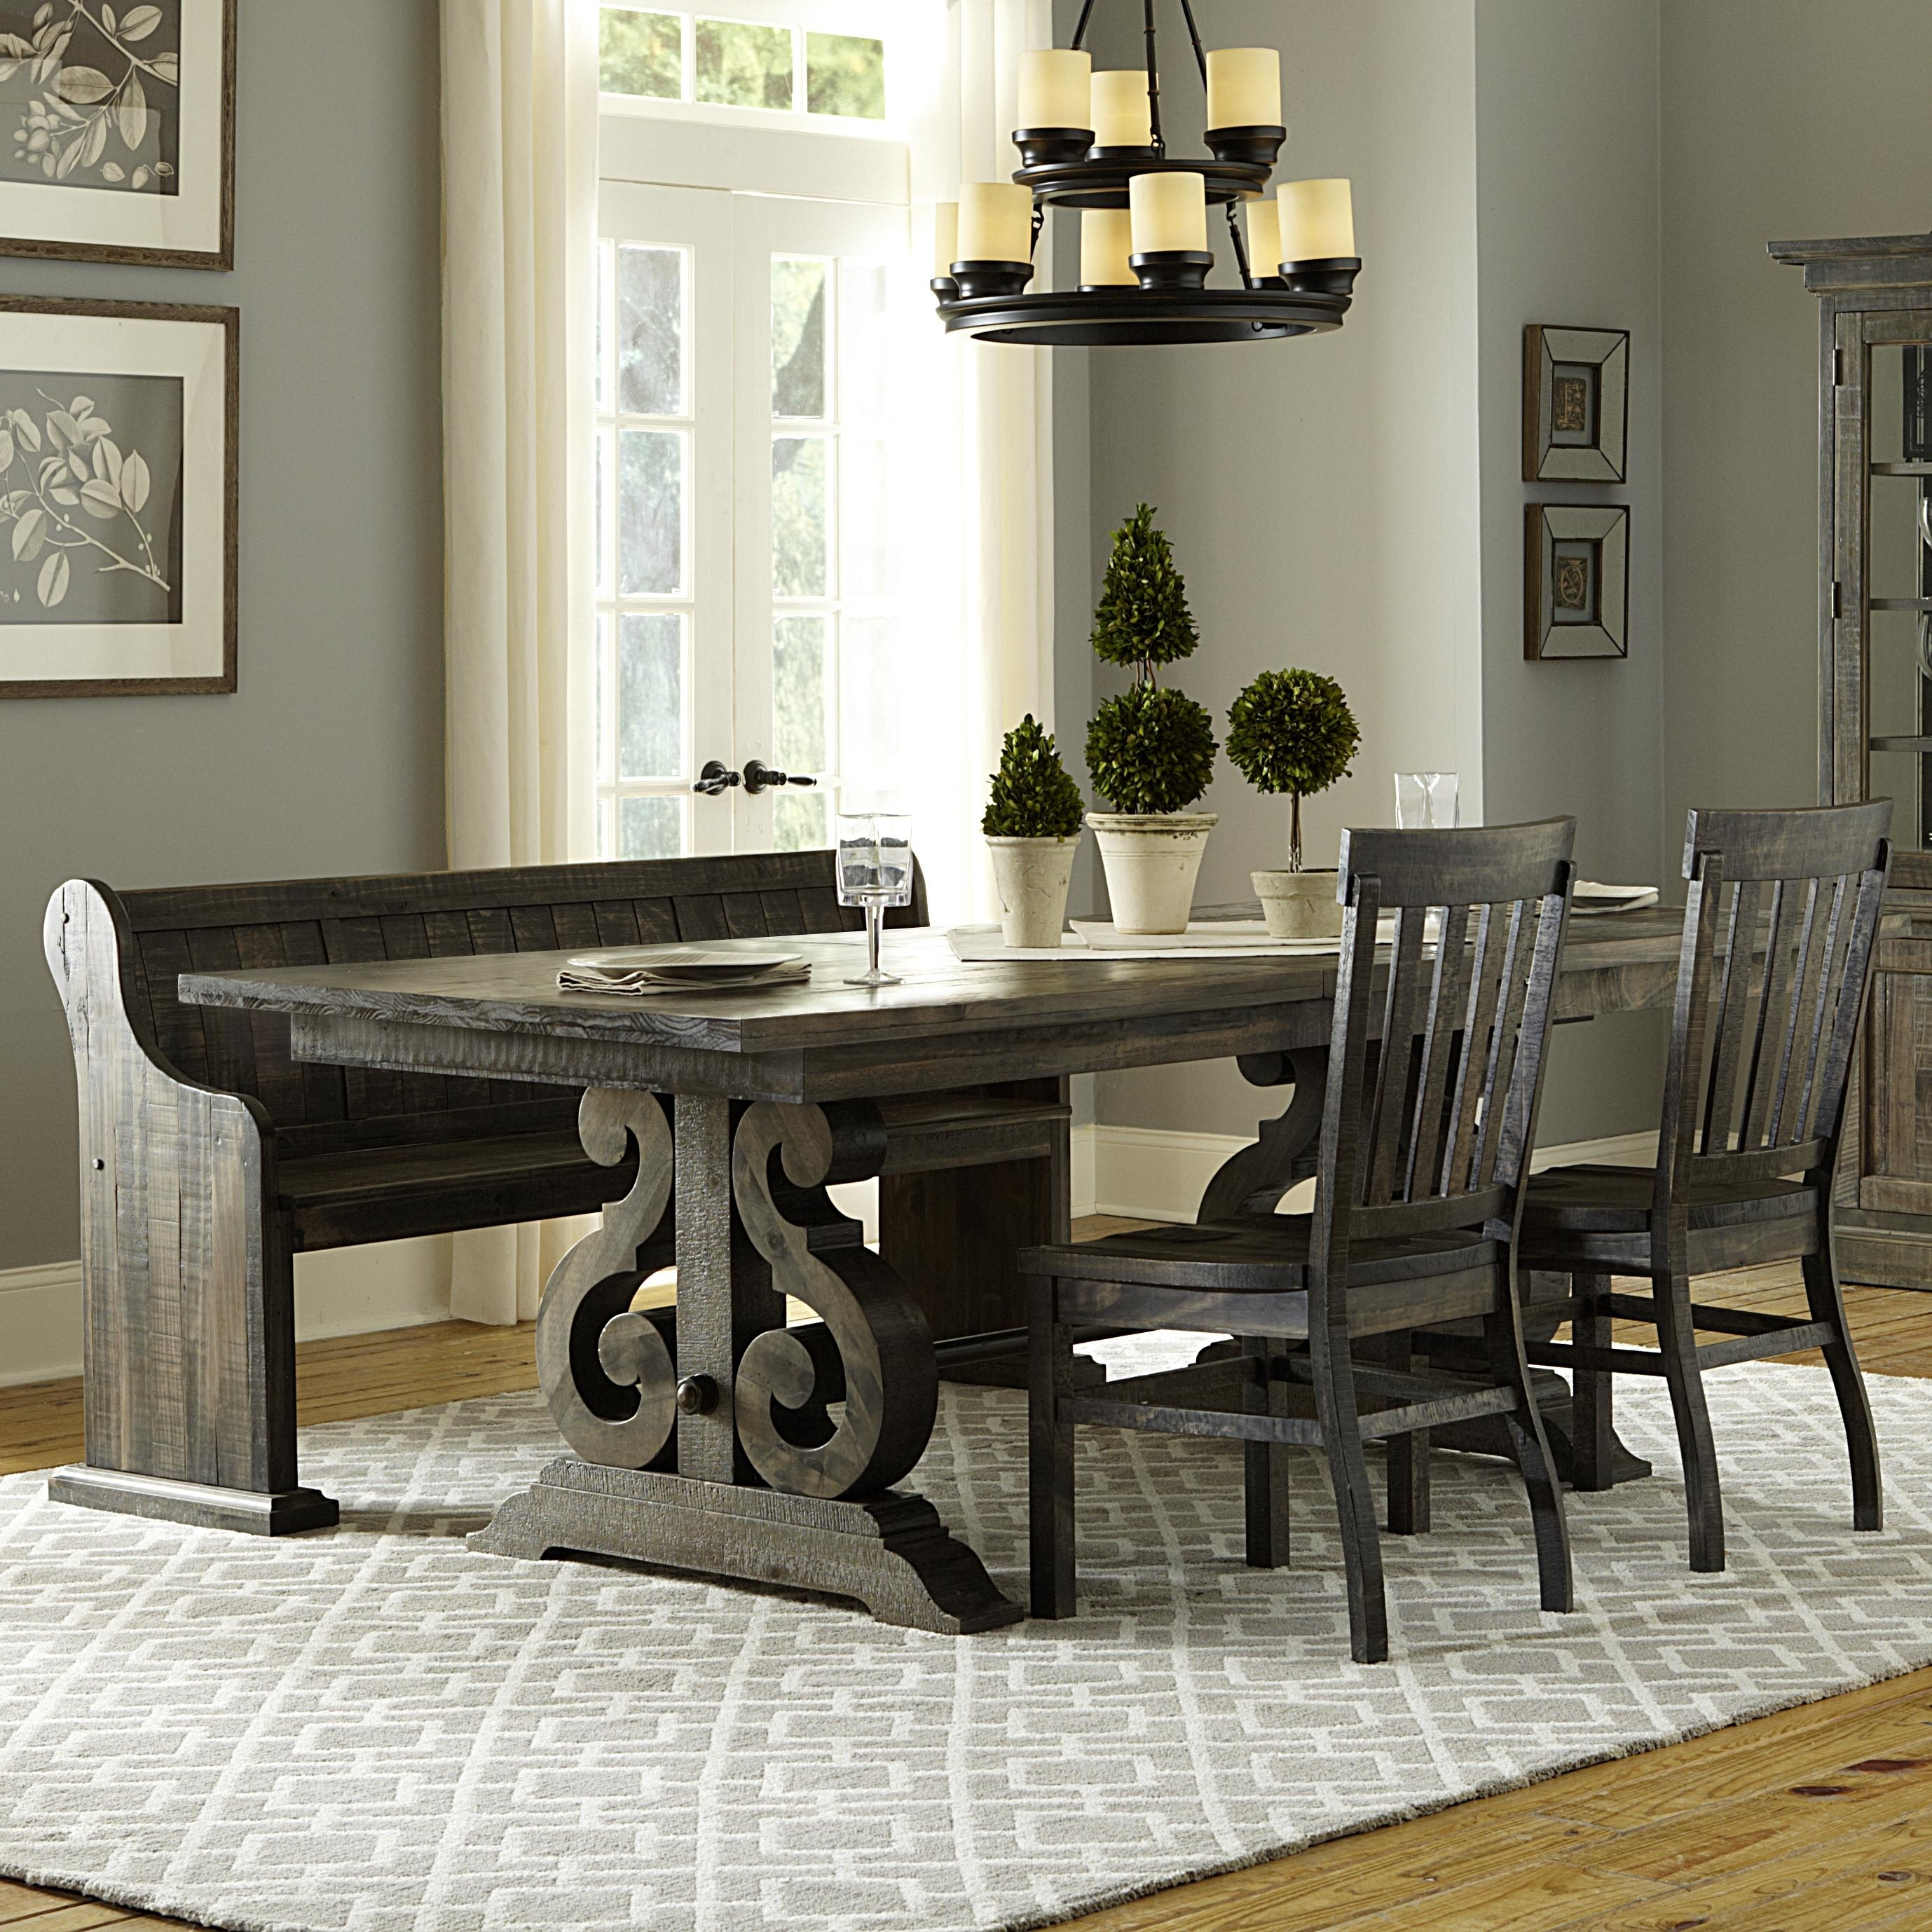 Table And Chair Sets | Baton Rouge And Lafayette, Louisiana Table Pertaining To Best And Newest Market 7 Piece Dining Sets With Side Chairs (Image 16 of 20)